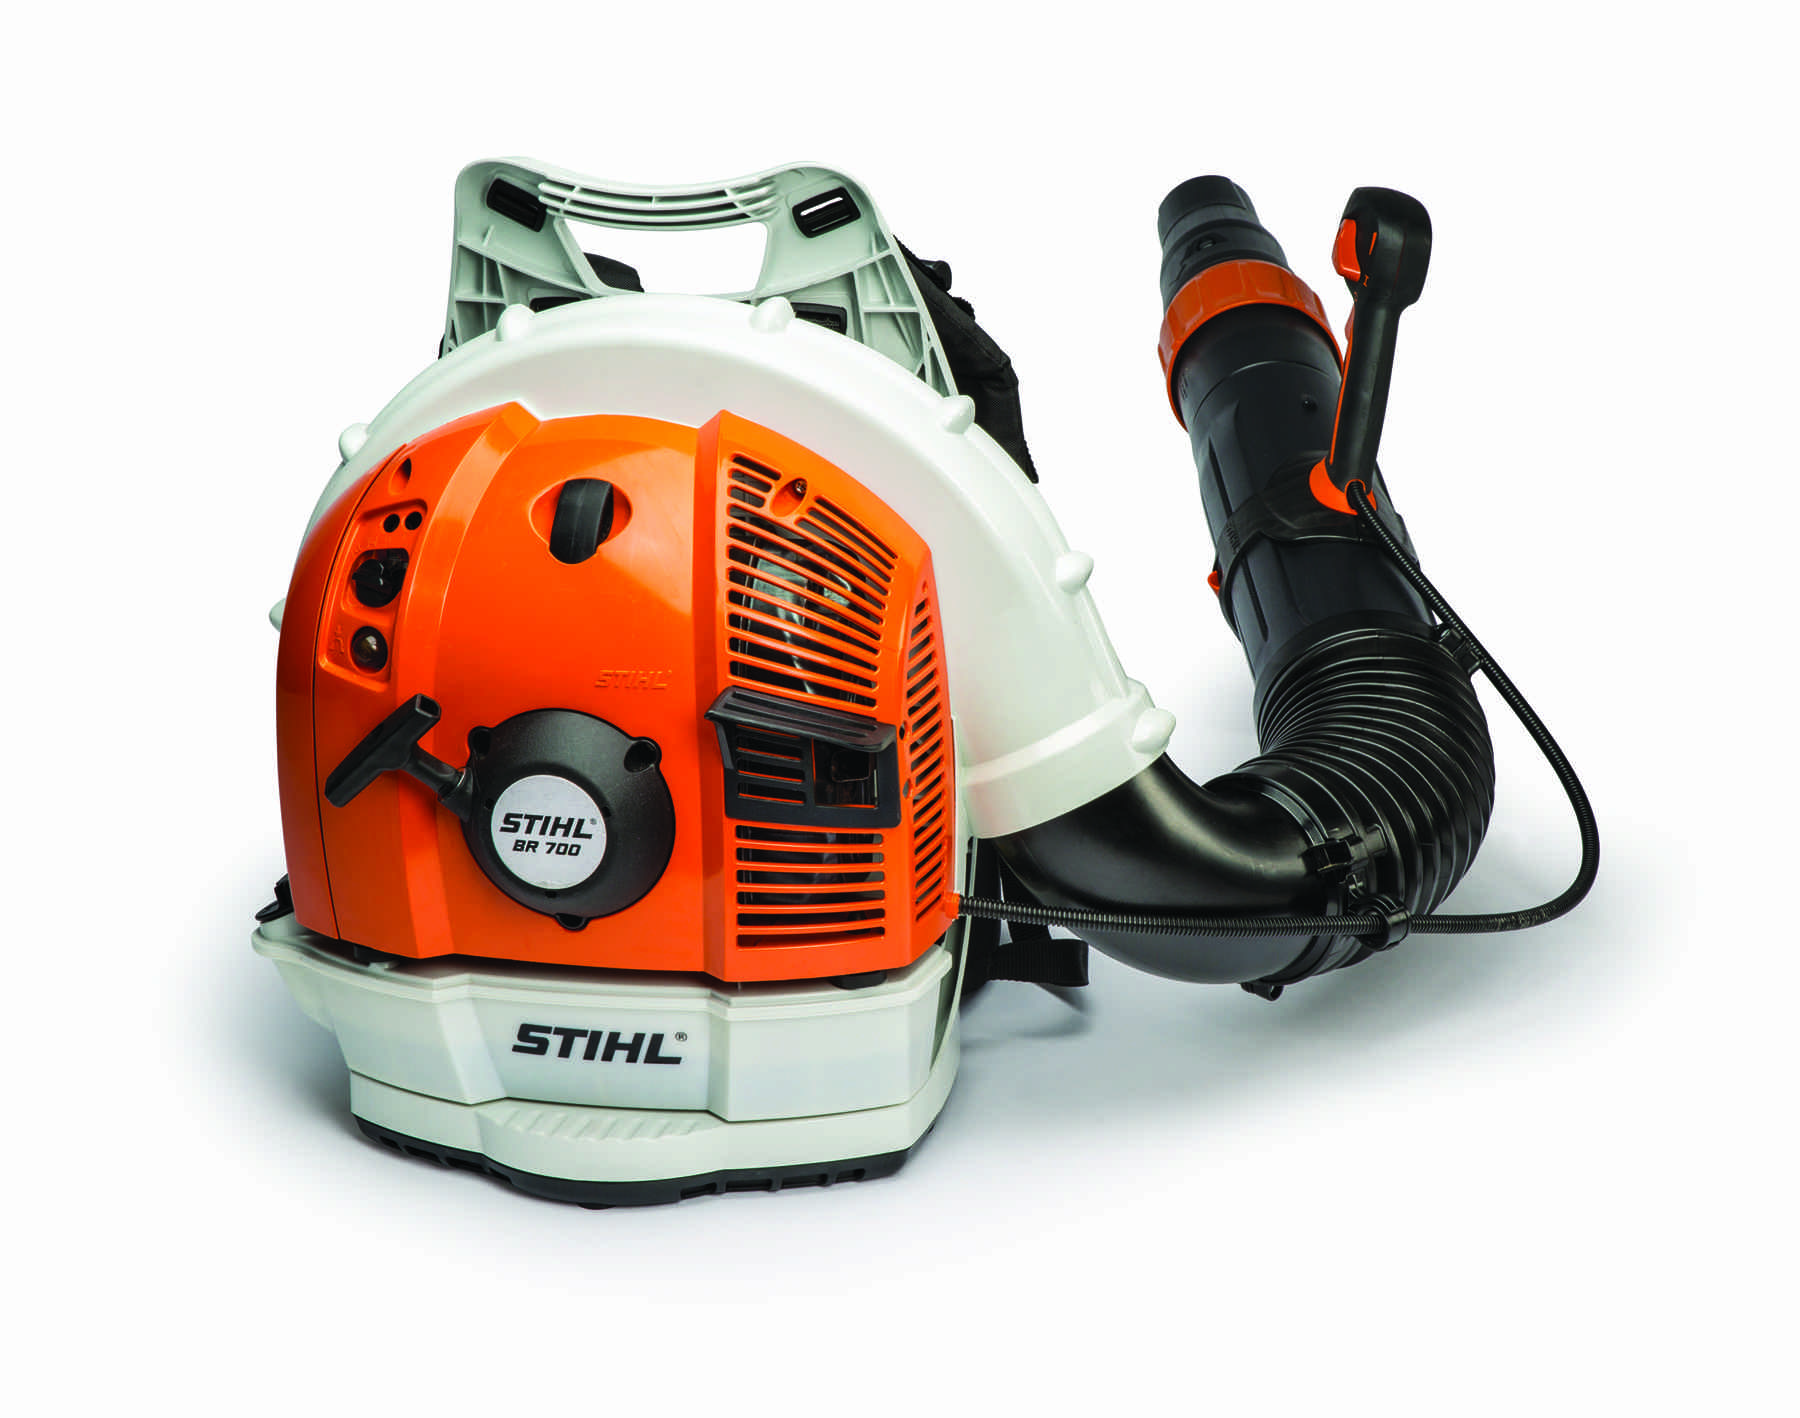 Stihl S New Blower Packs Enough Power To Move Wet Leaves